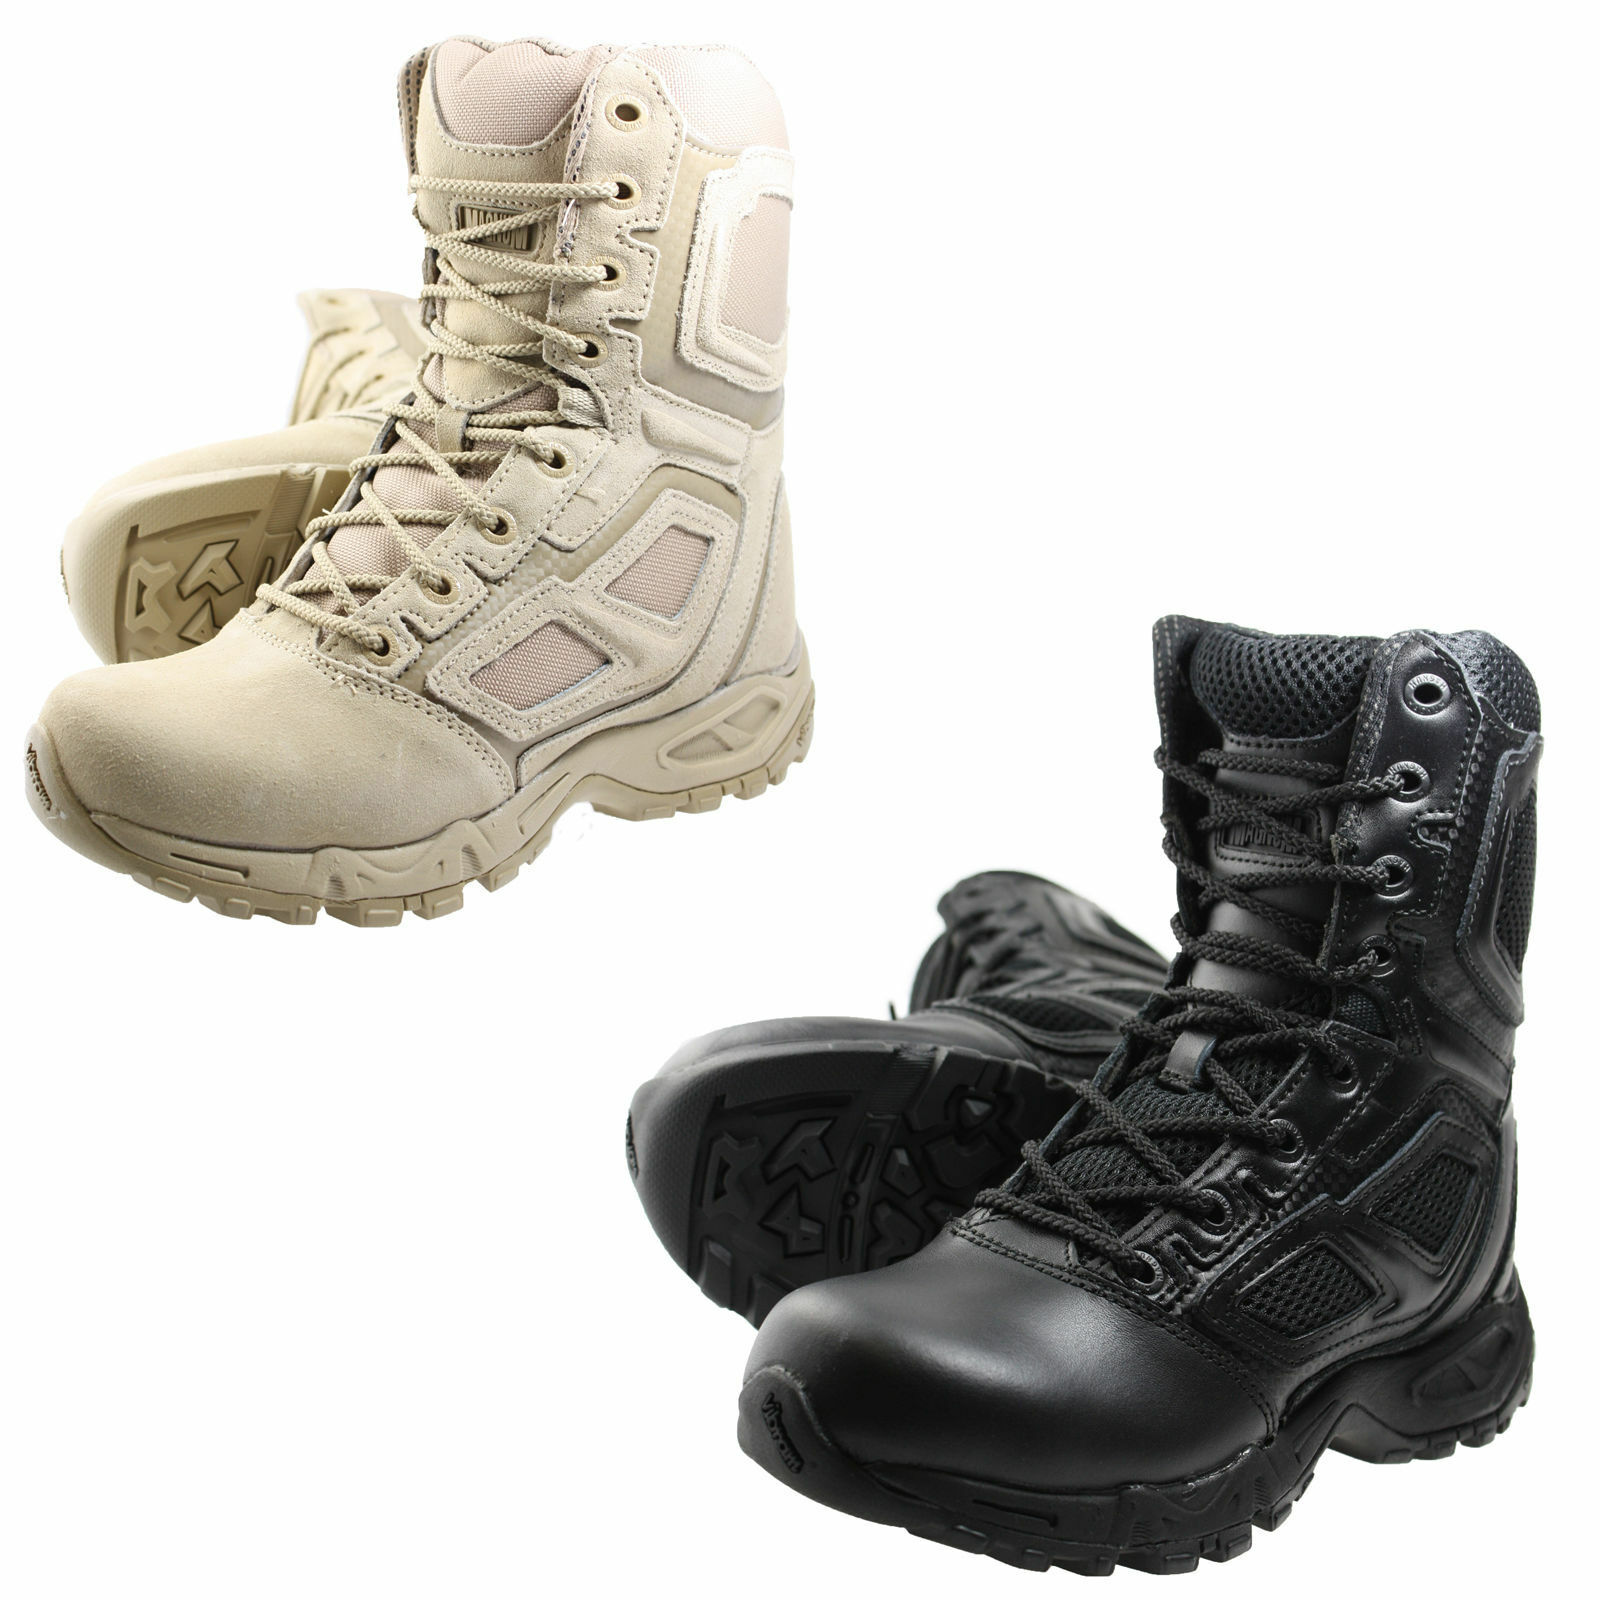 Magnum Elite Spider 8.0 Army Tactical Patrol Stiefel Police Security Forces